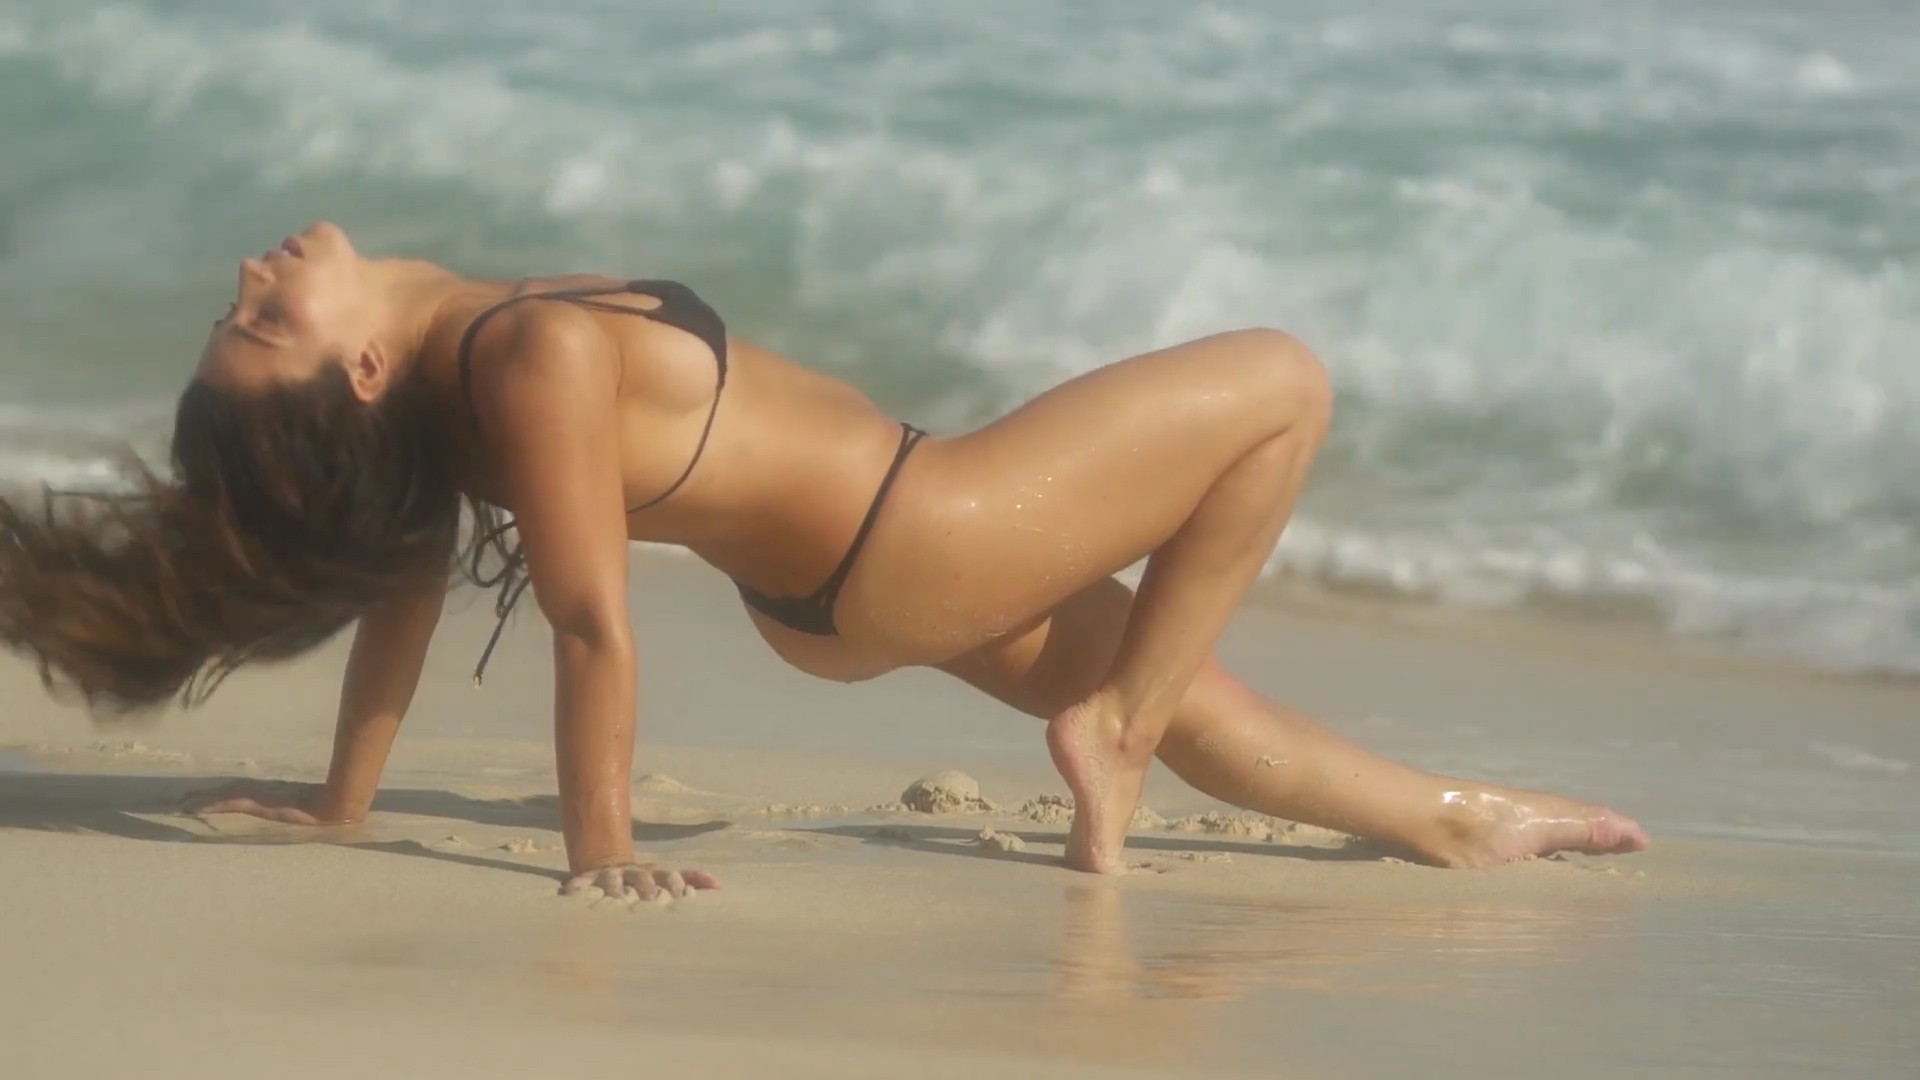 Aly Raisman Really Hot Beach Pics